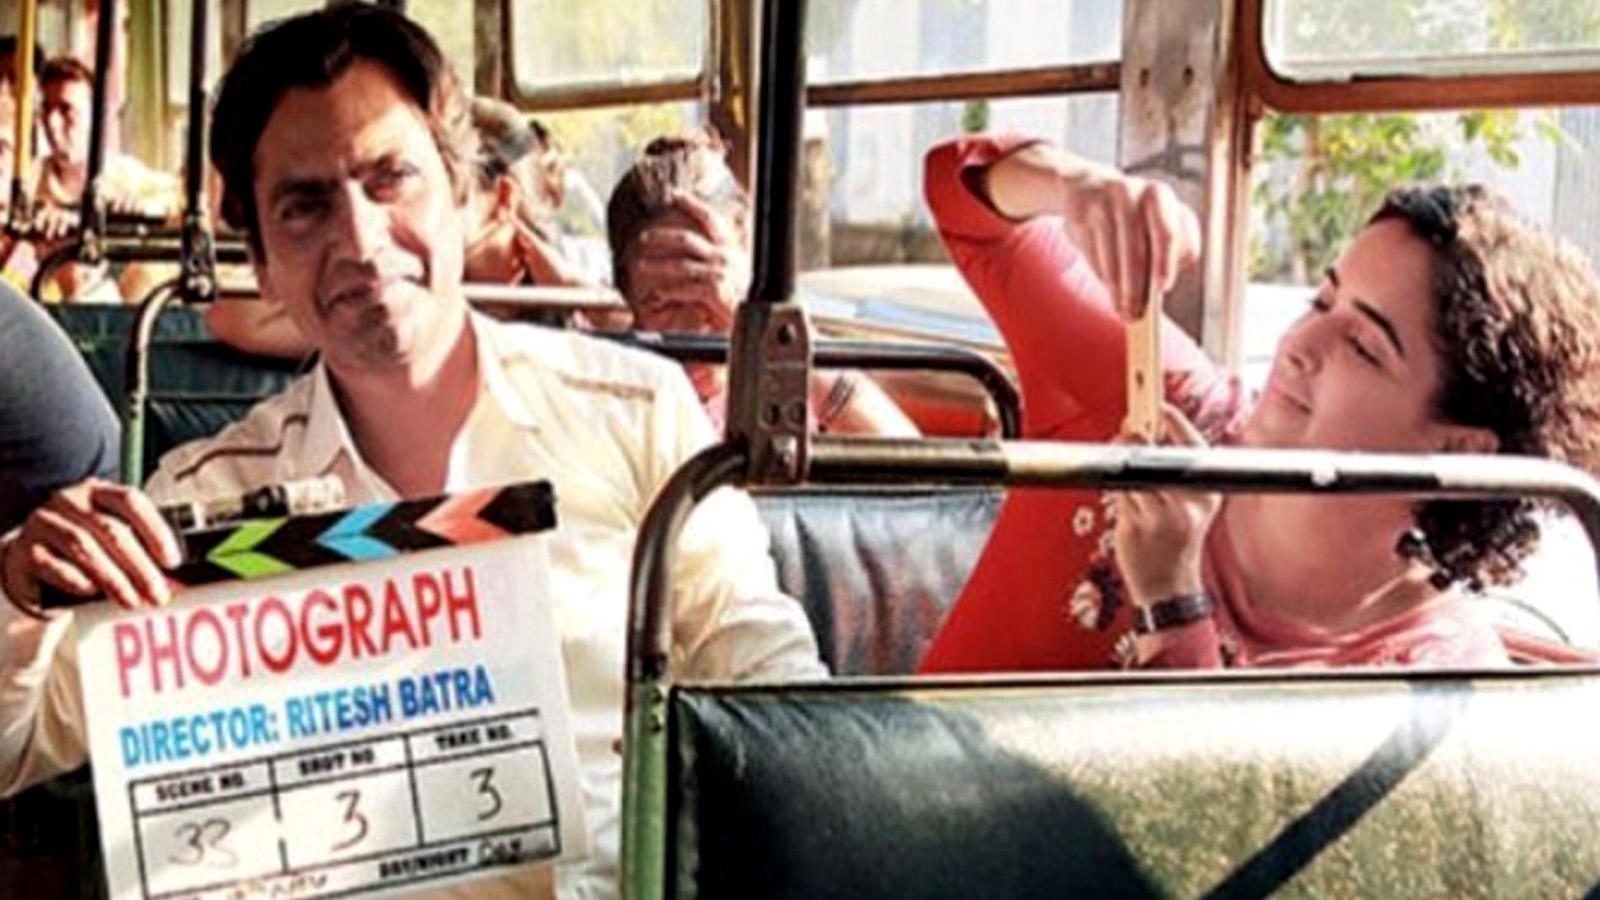 nawazuddin-siddiqui-doesnt-want-his-upcoming-film-to-release-in-pakistan